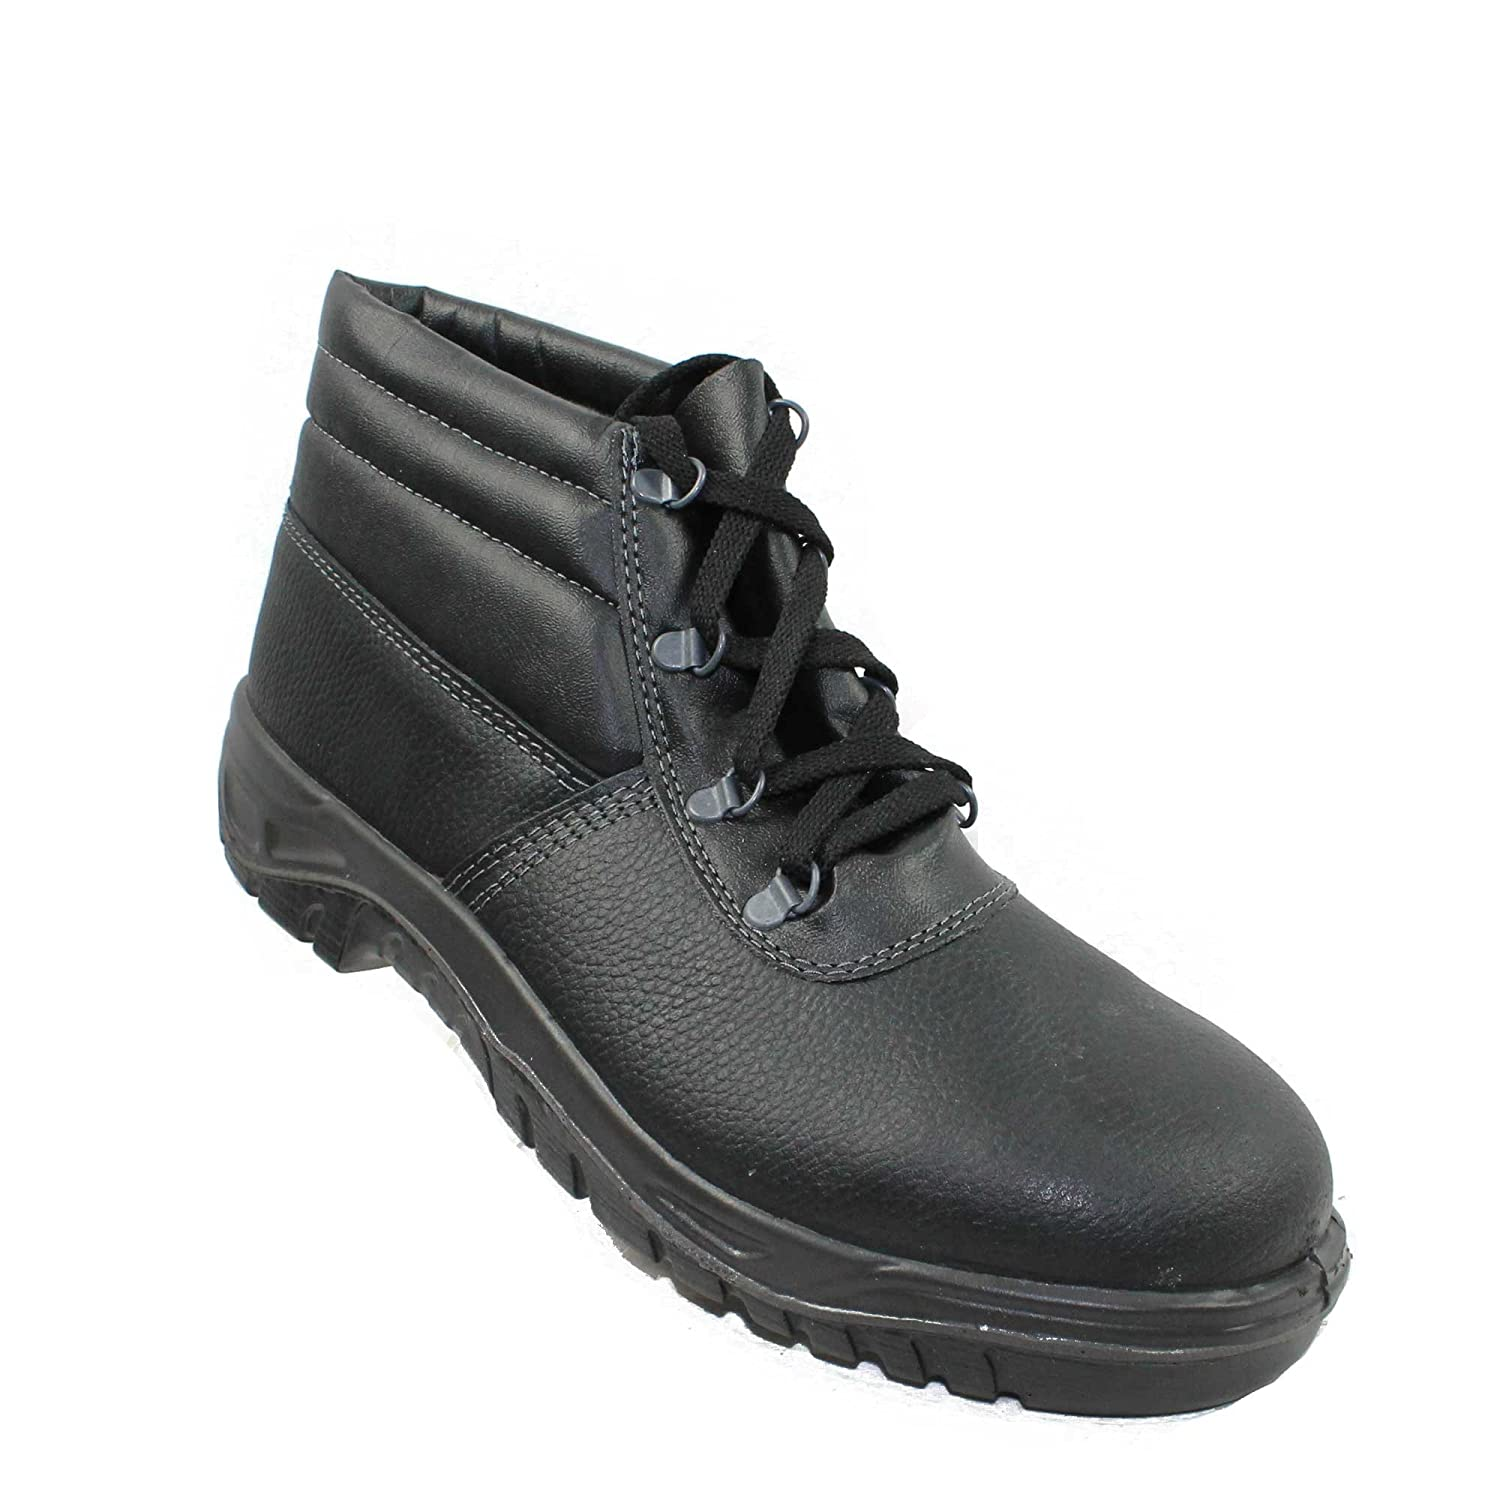 c37461eef49 Centek FS825 S1P Safety Shoes Work Shoes Hiking Shoes high Black ...